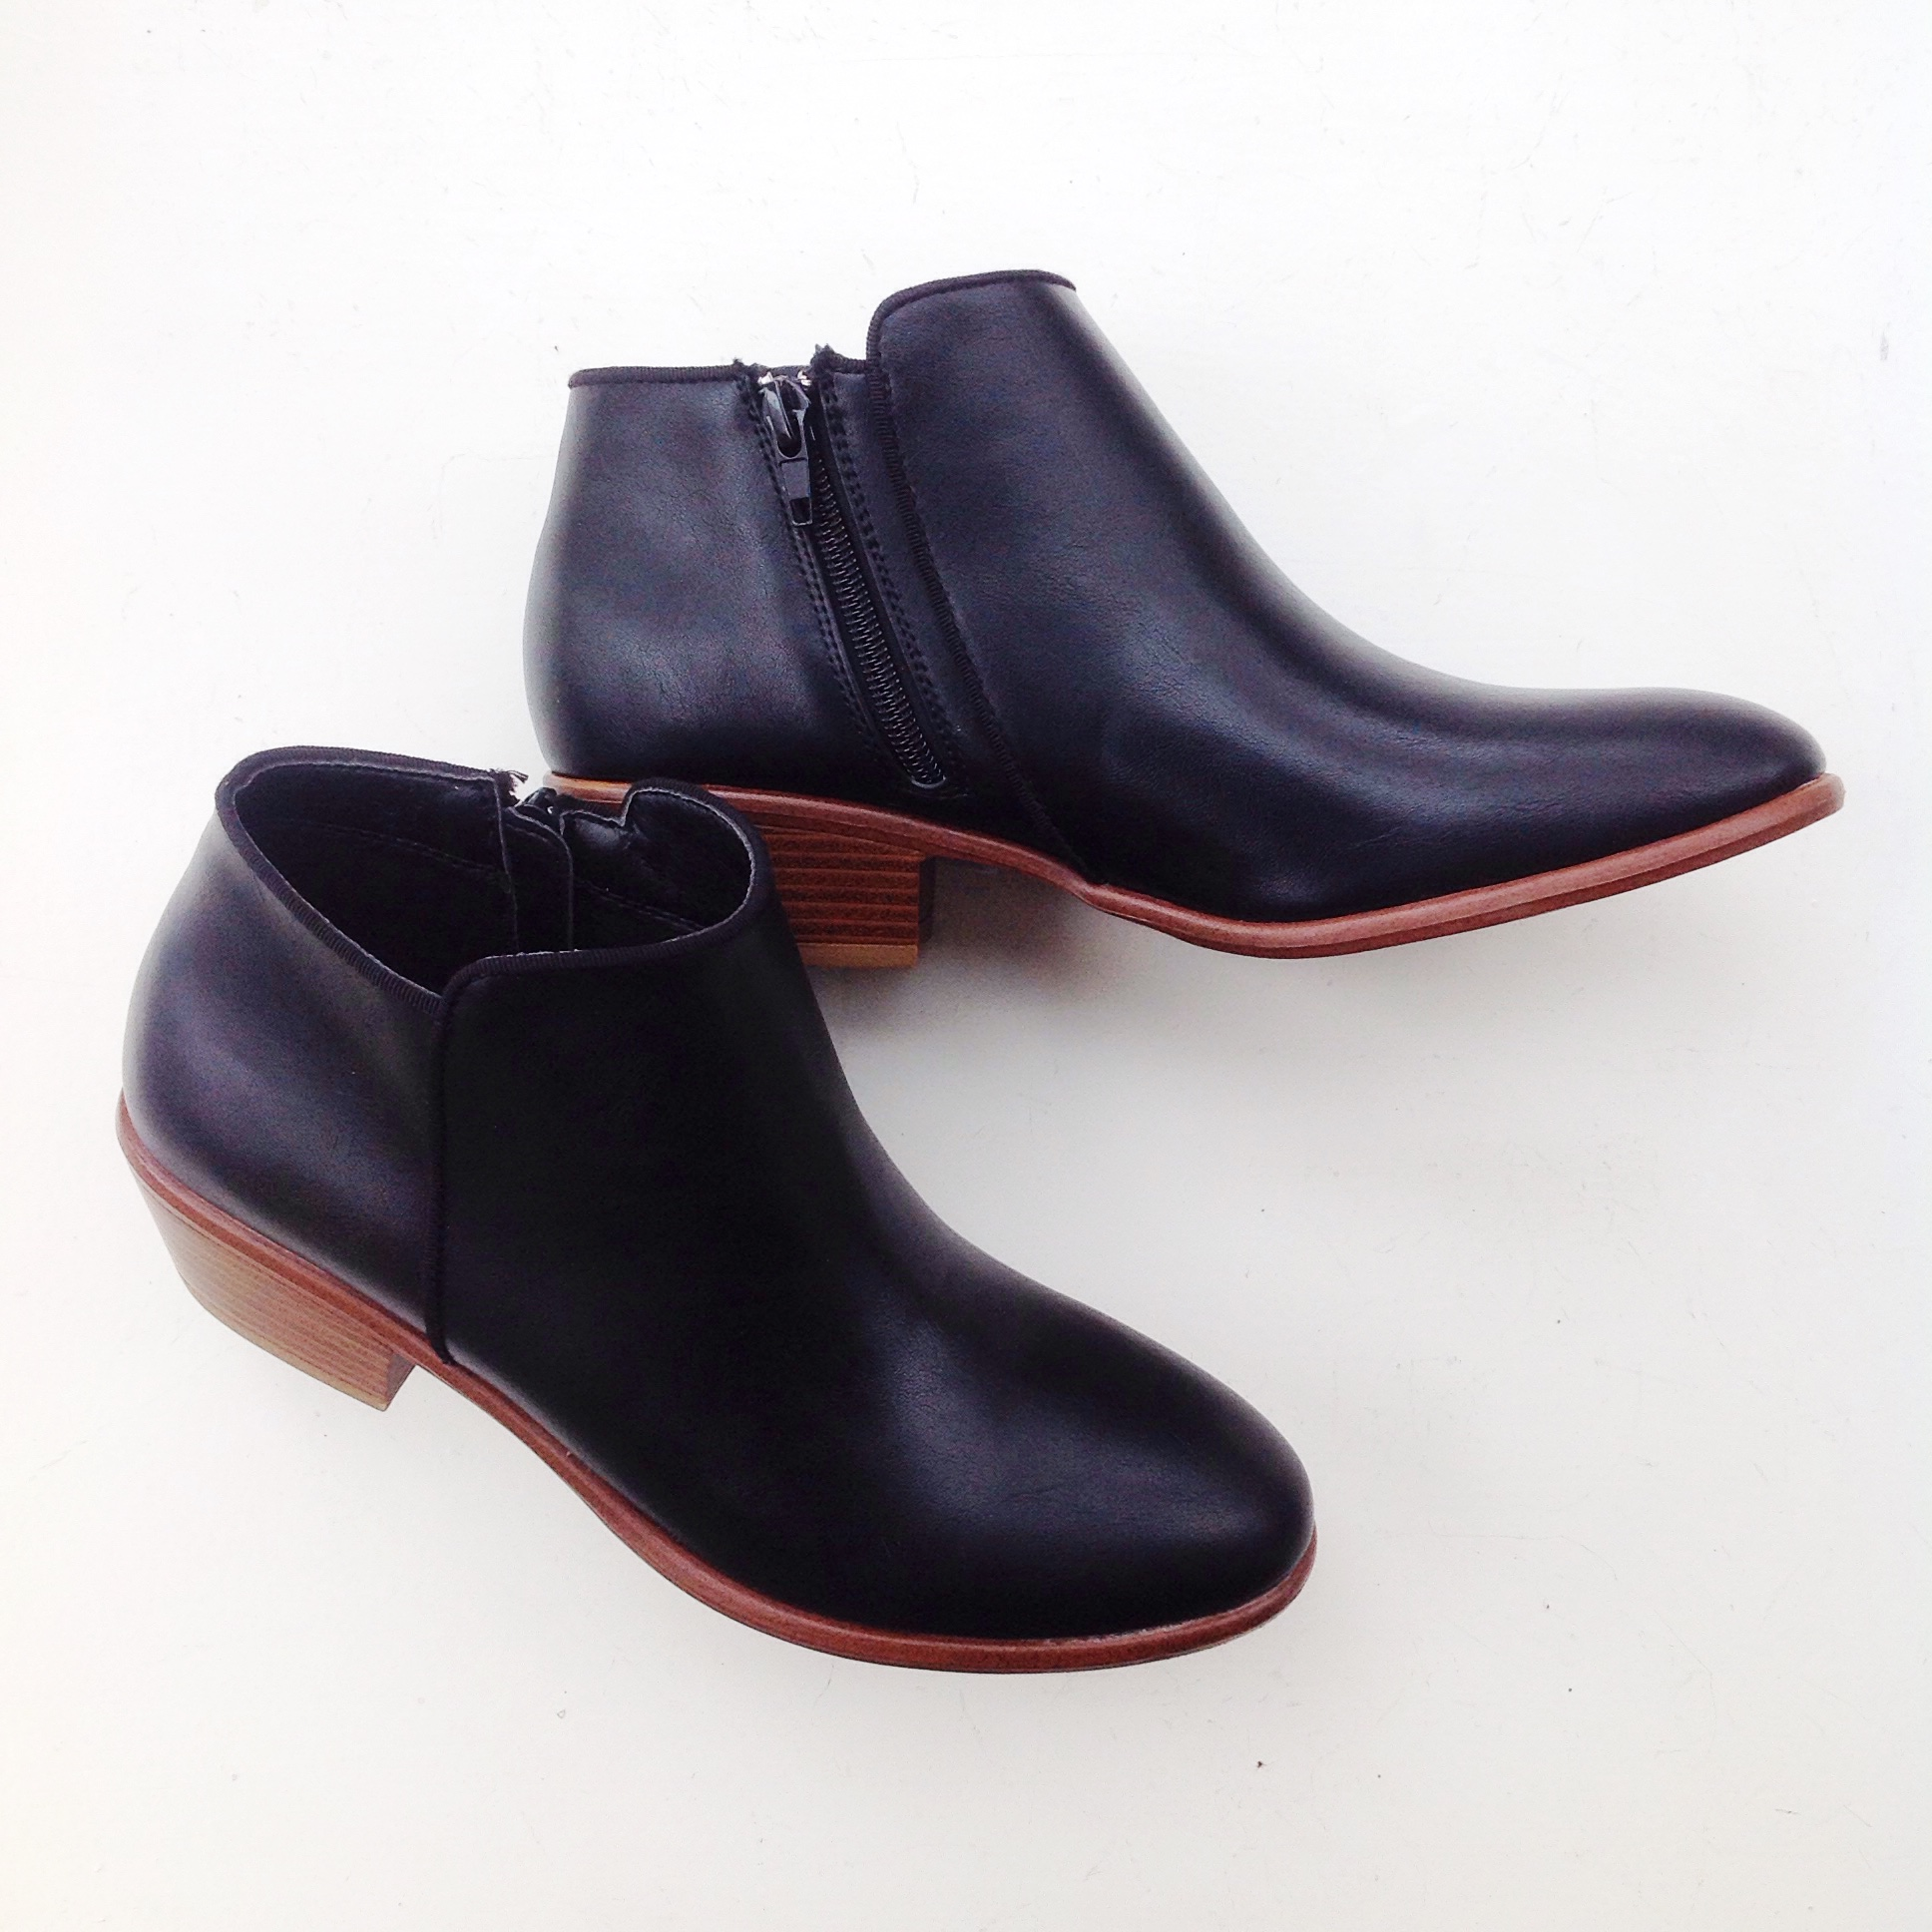 Sleek faux leather booties in black, $45